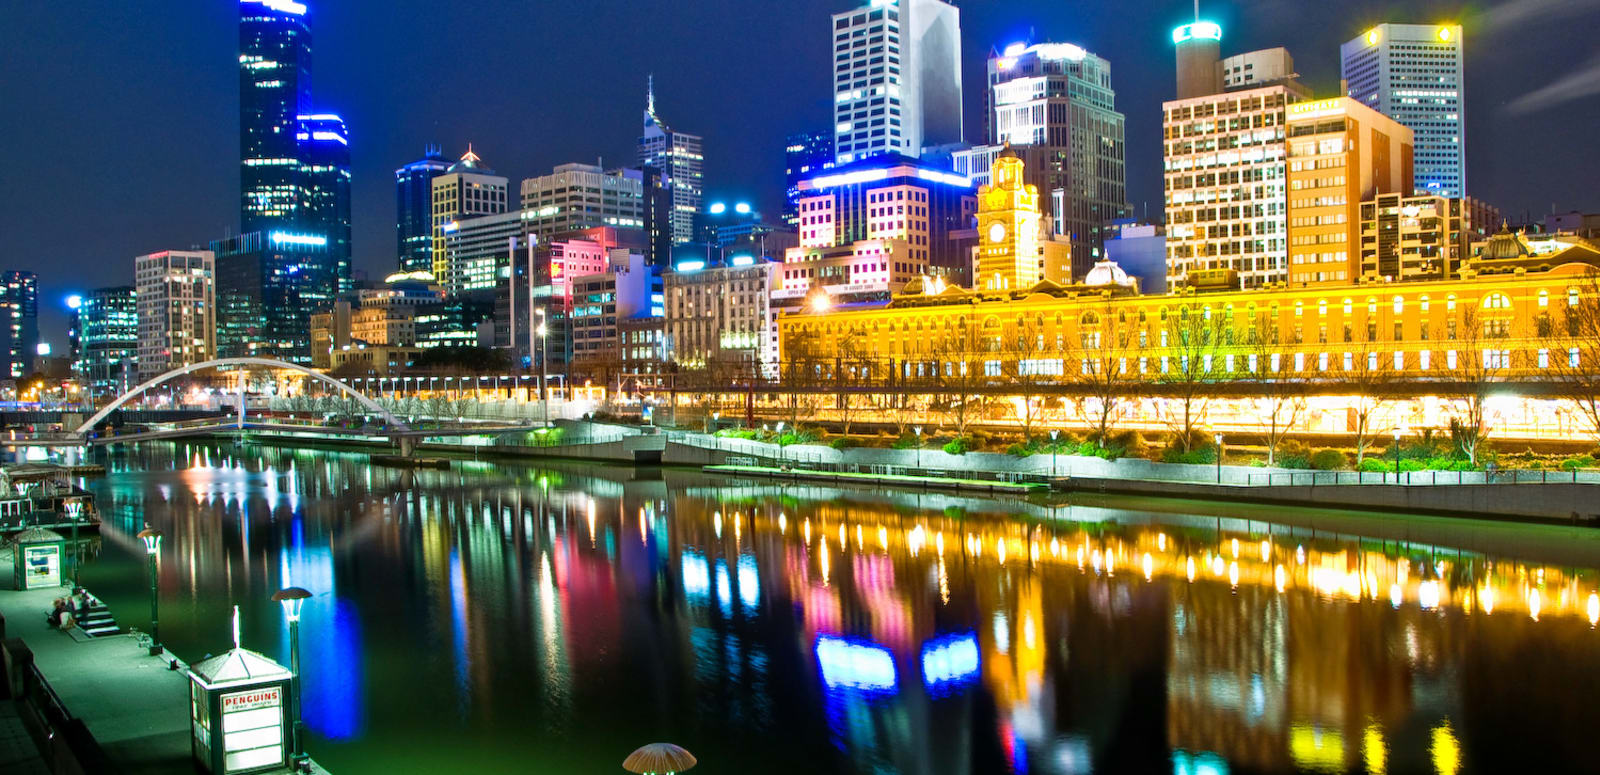 1493122418_melbourne__australia_by_night.jpg